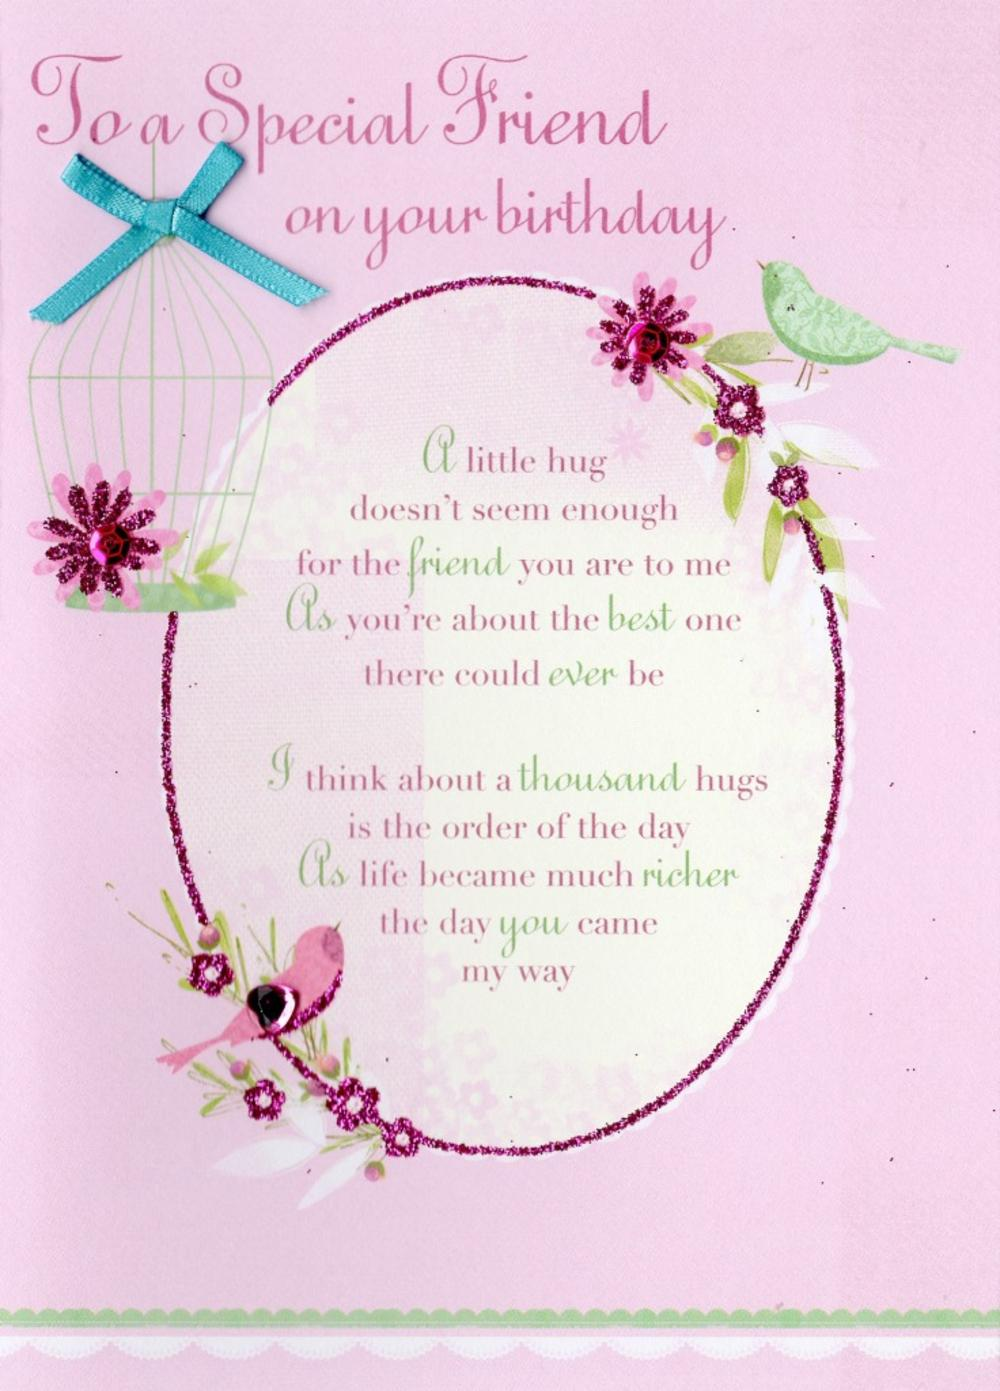 special friend birthday greeting card  cards  love kates, Birthday card